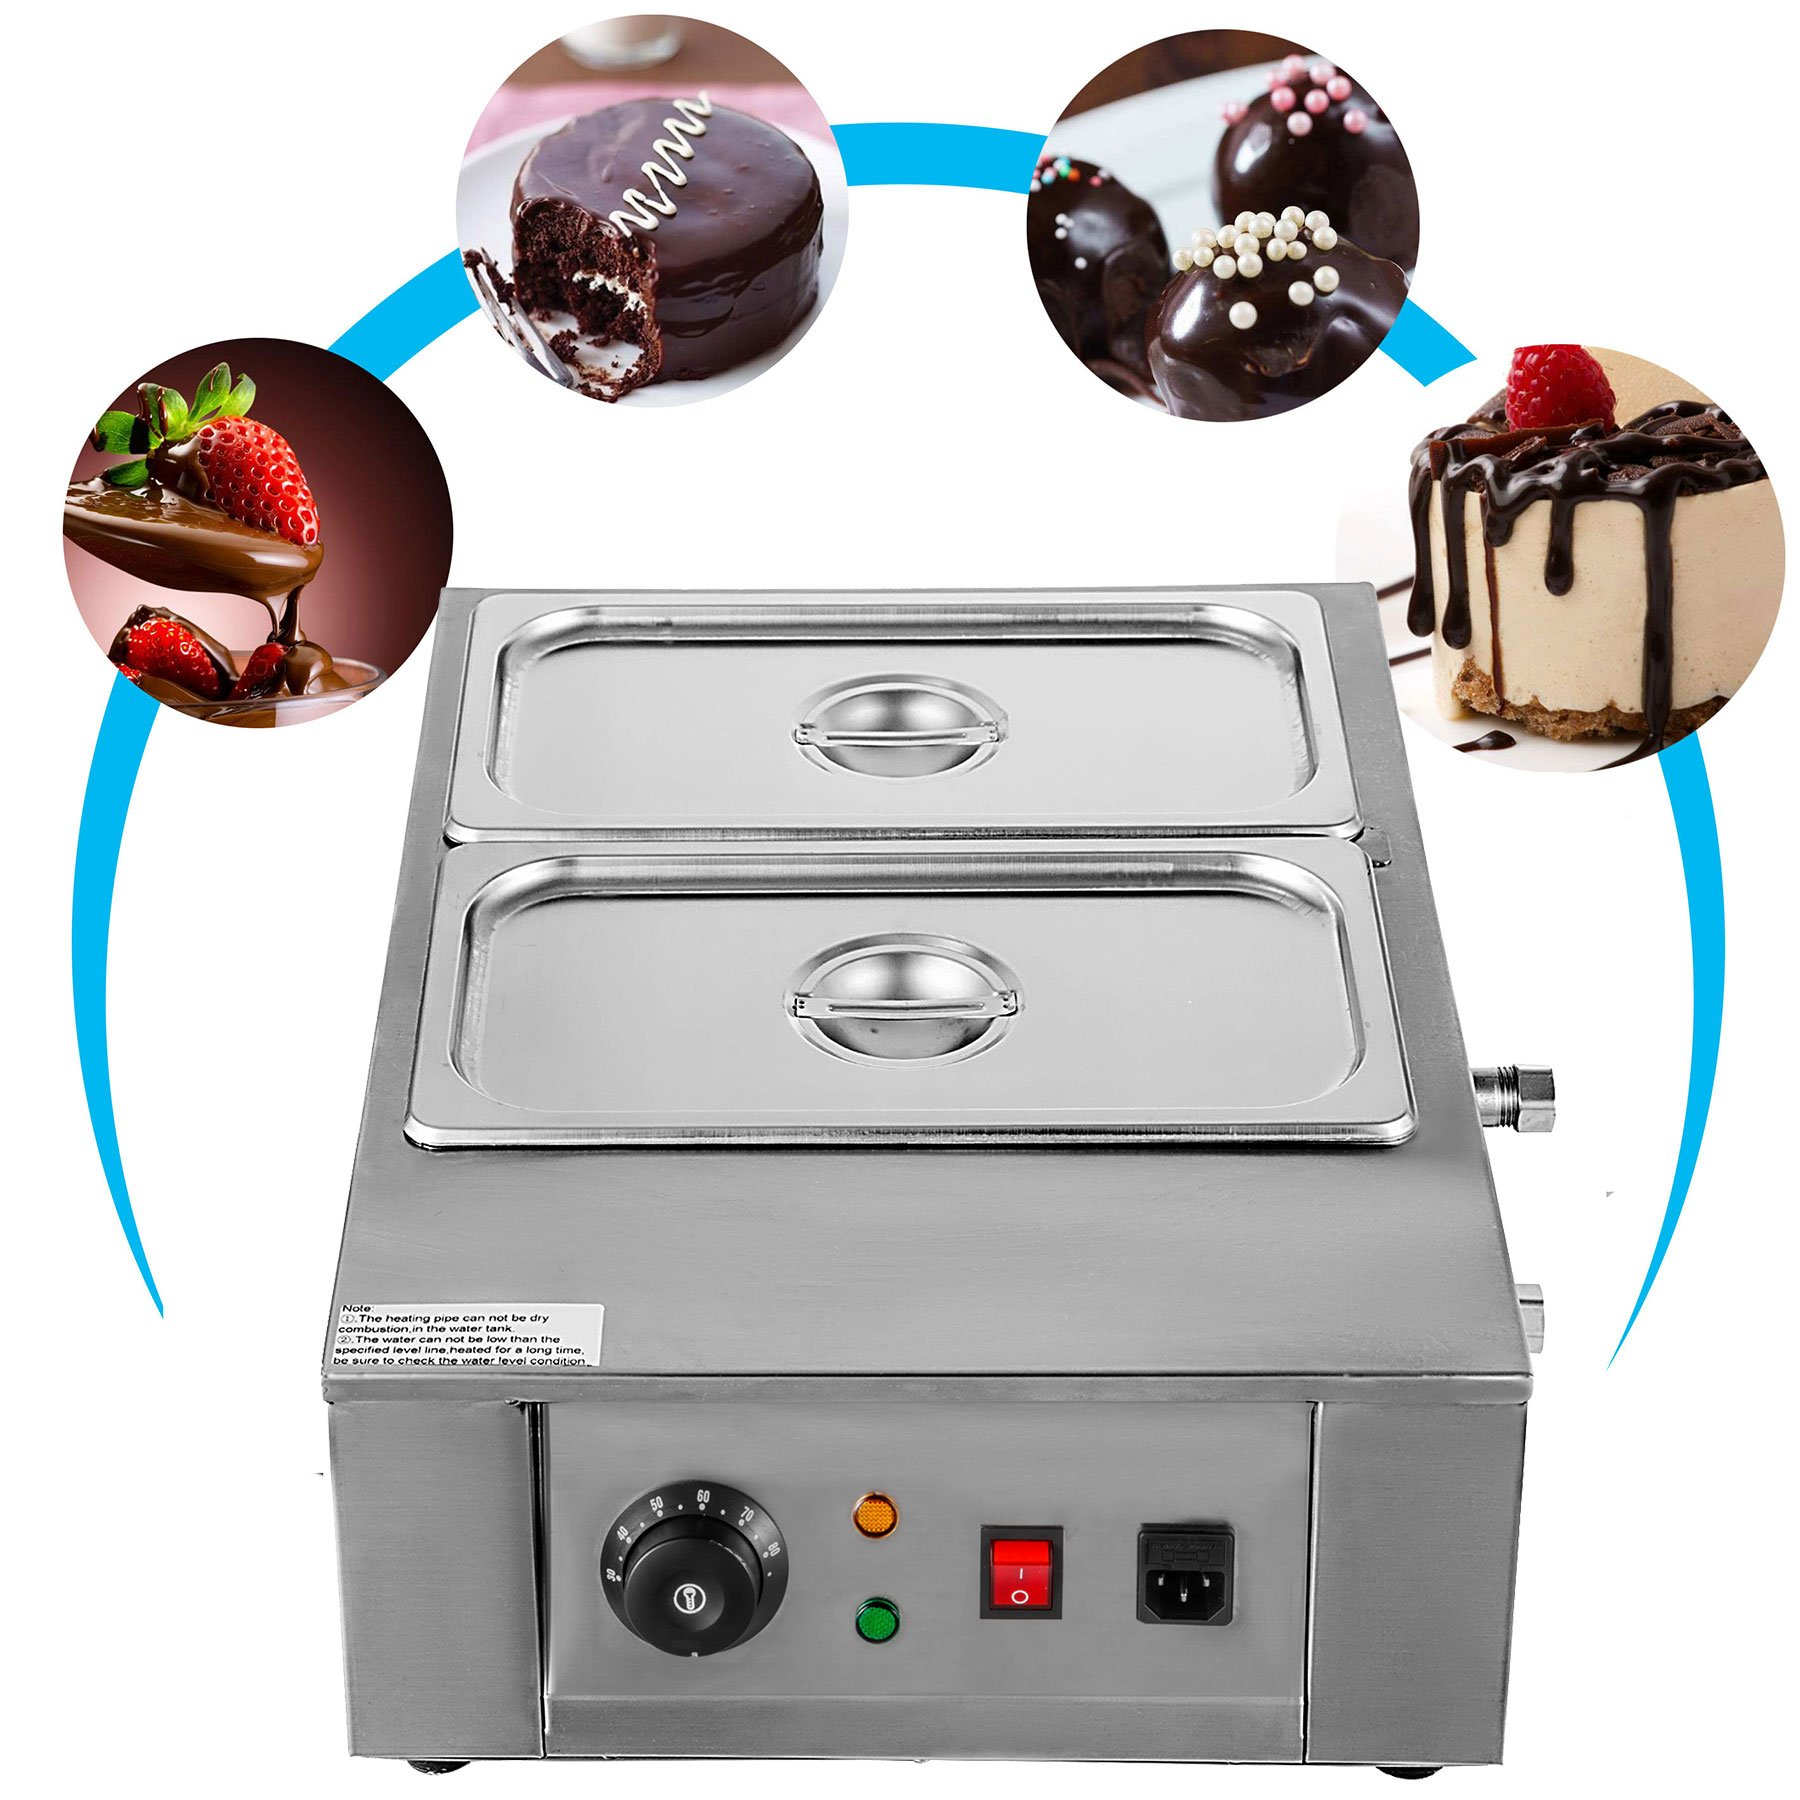 VEVOR 1000W Electric Chocolate Melting Pot Machine 2Tanks Commercial Electric Chocolate Heater Digital Control Two Pan Electric Chocolate Melter